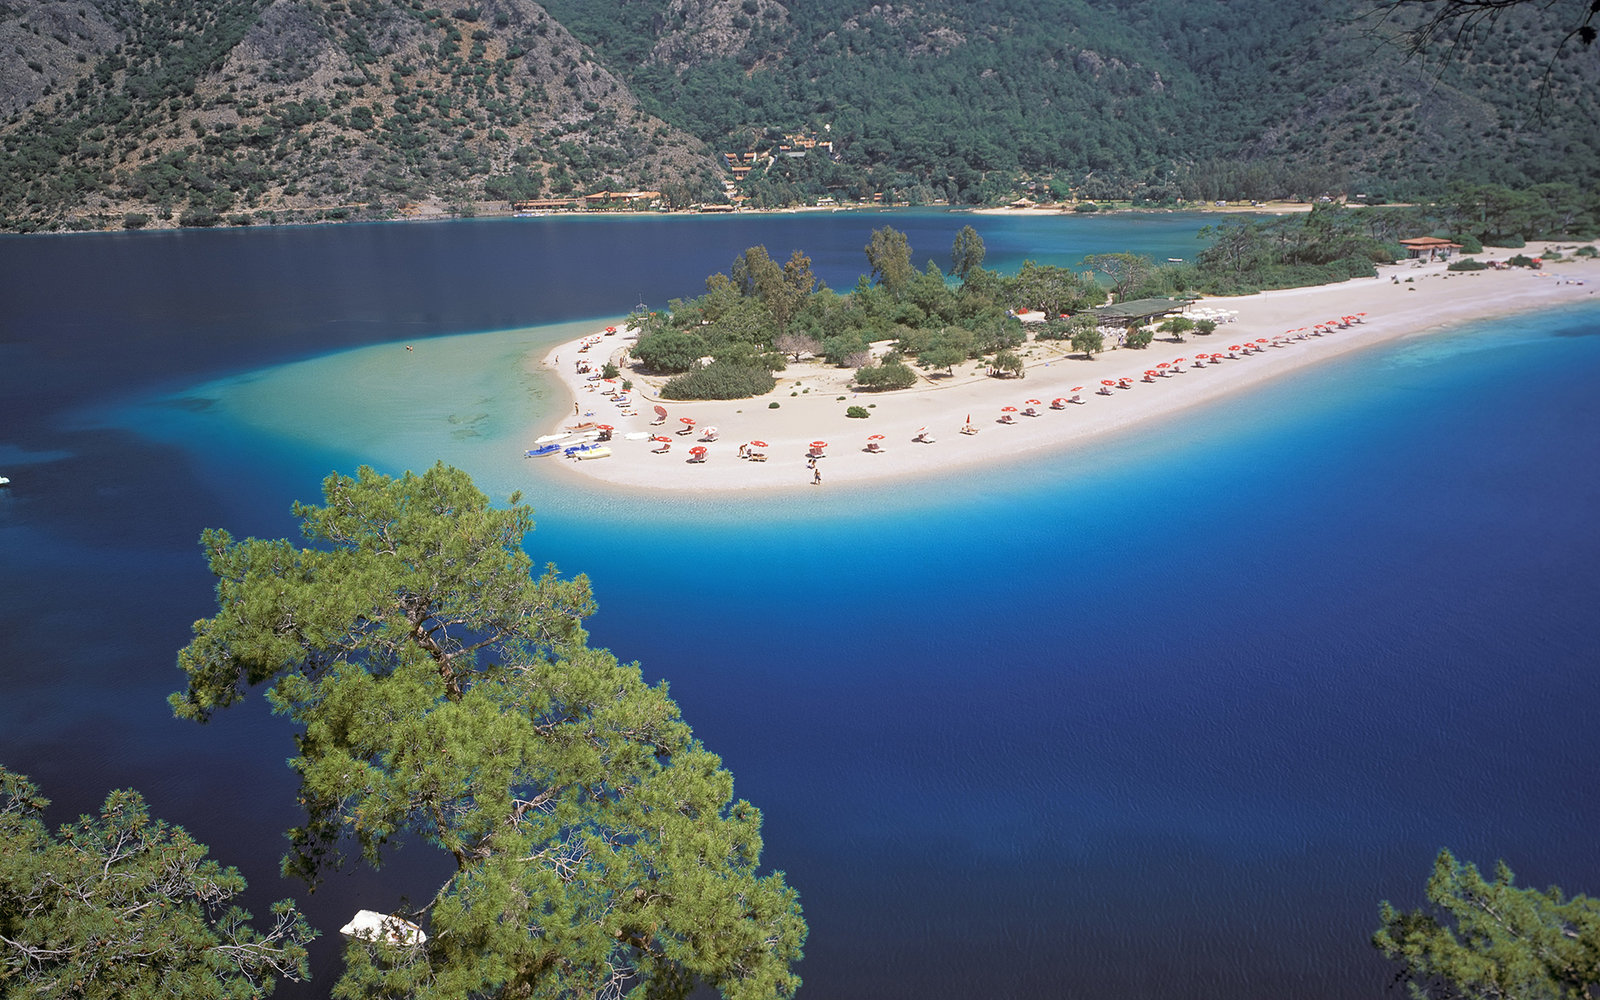 View of the Blue Lagoon, Oludeniz, Anatolia, Turkey